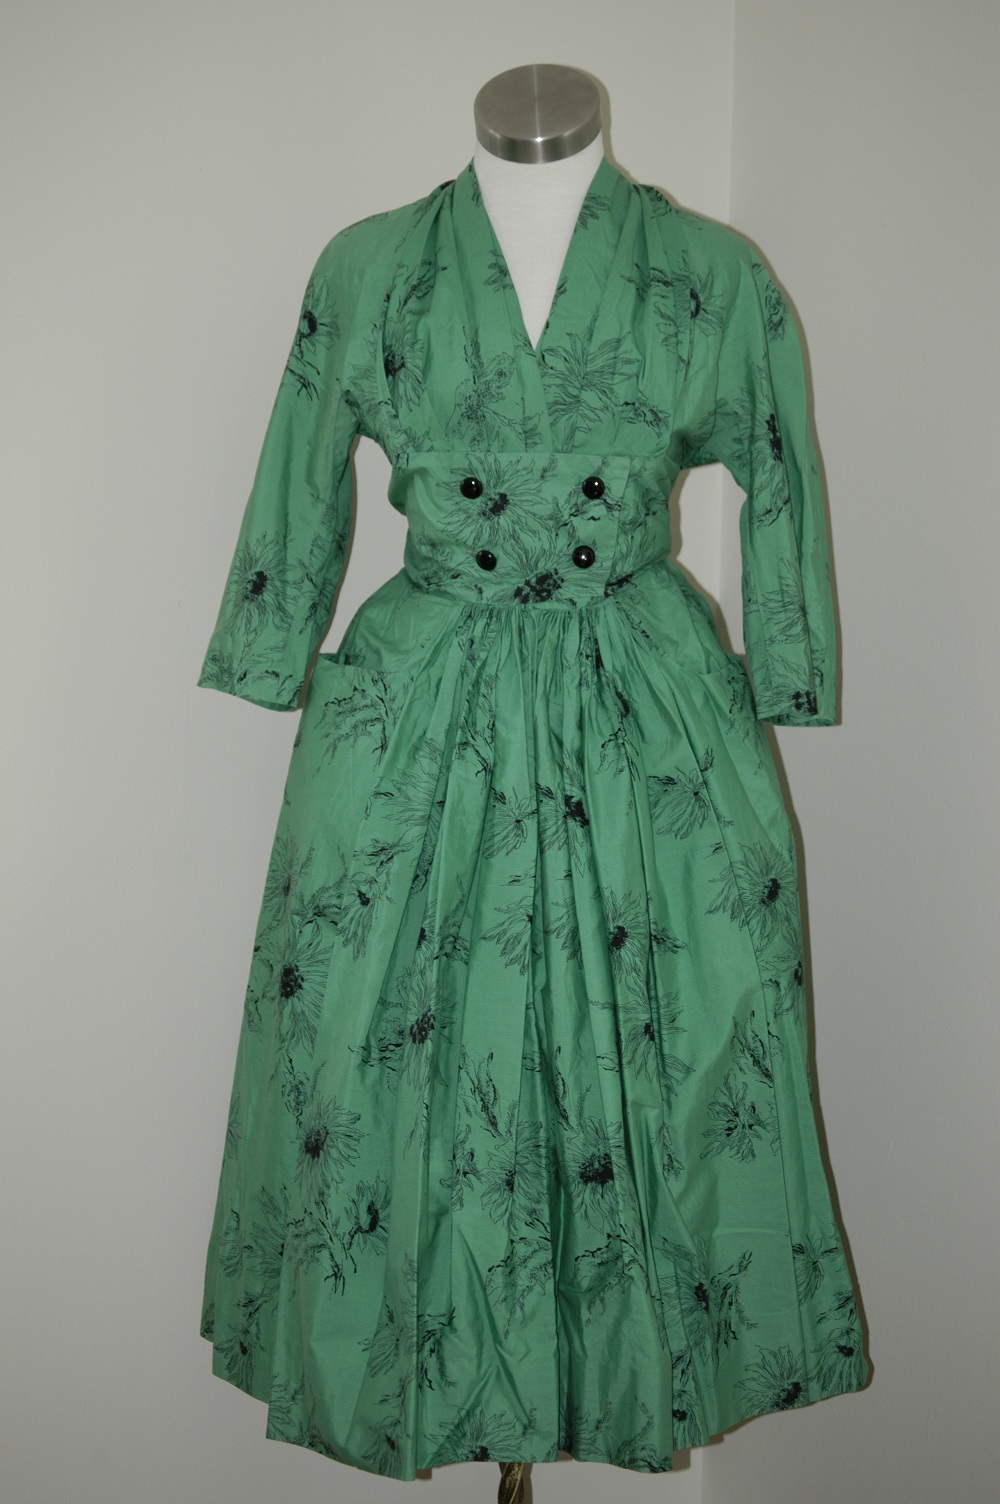 Vintage Clothing Do You Think Its Coming Back: Carrie's Vintage Finds: 1950s Horrockses Dresses